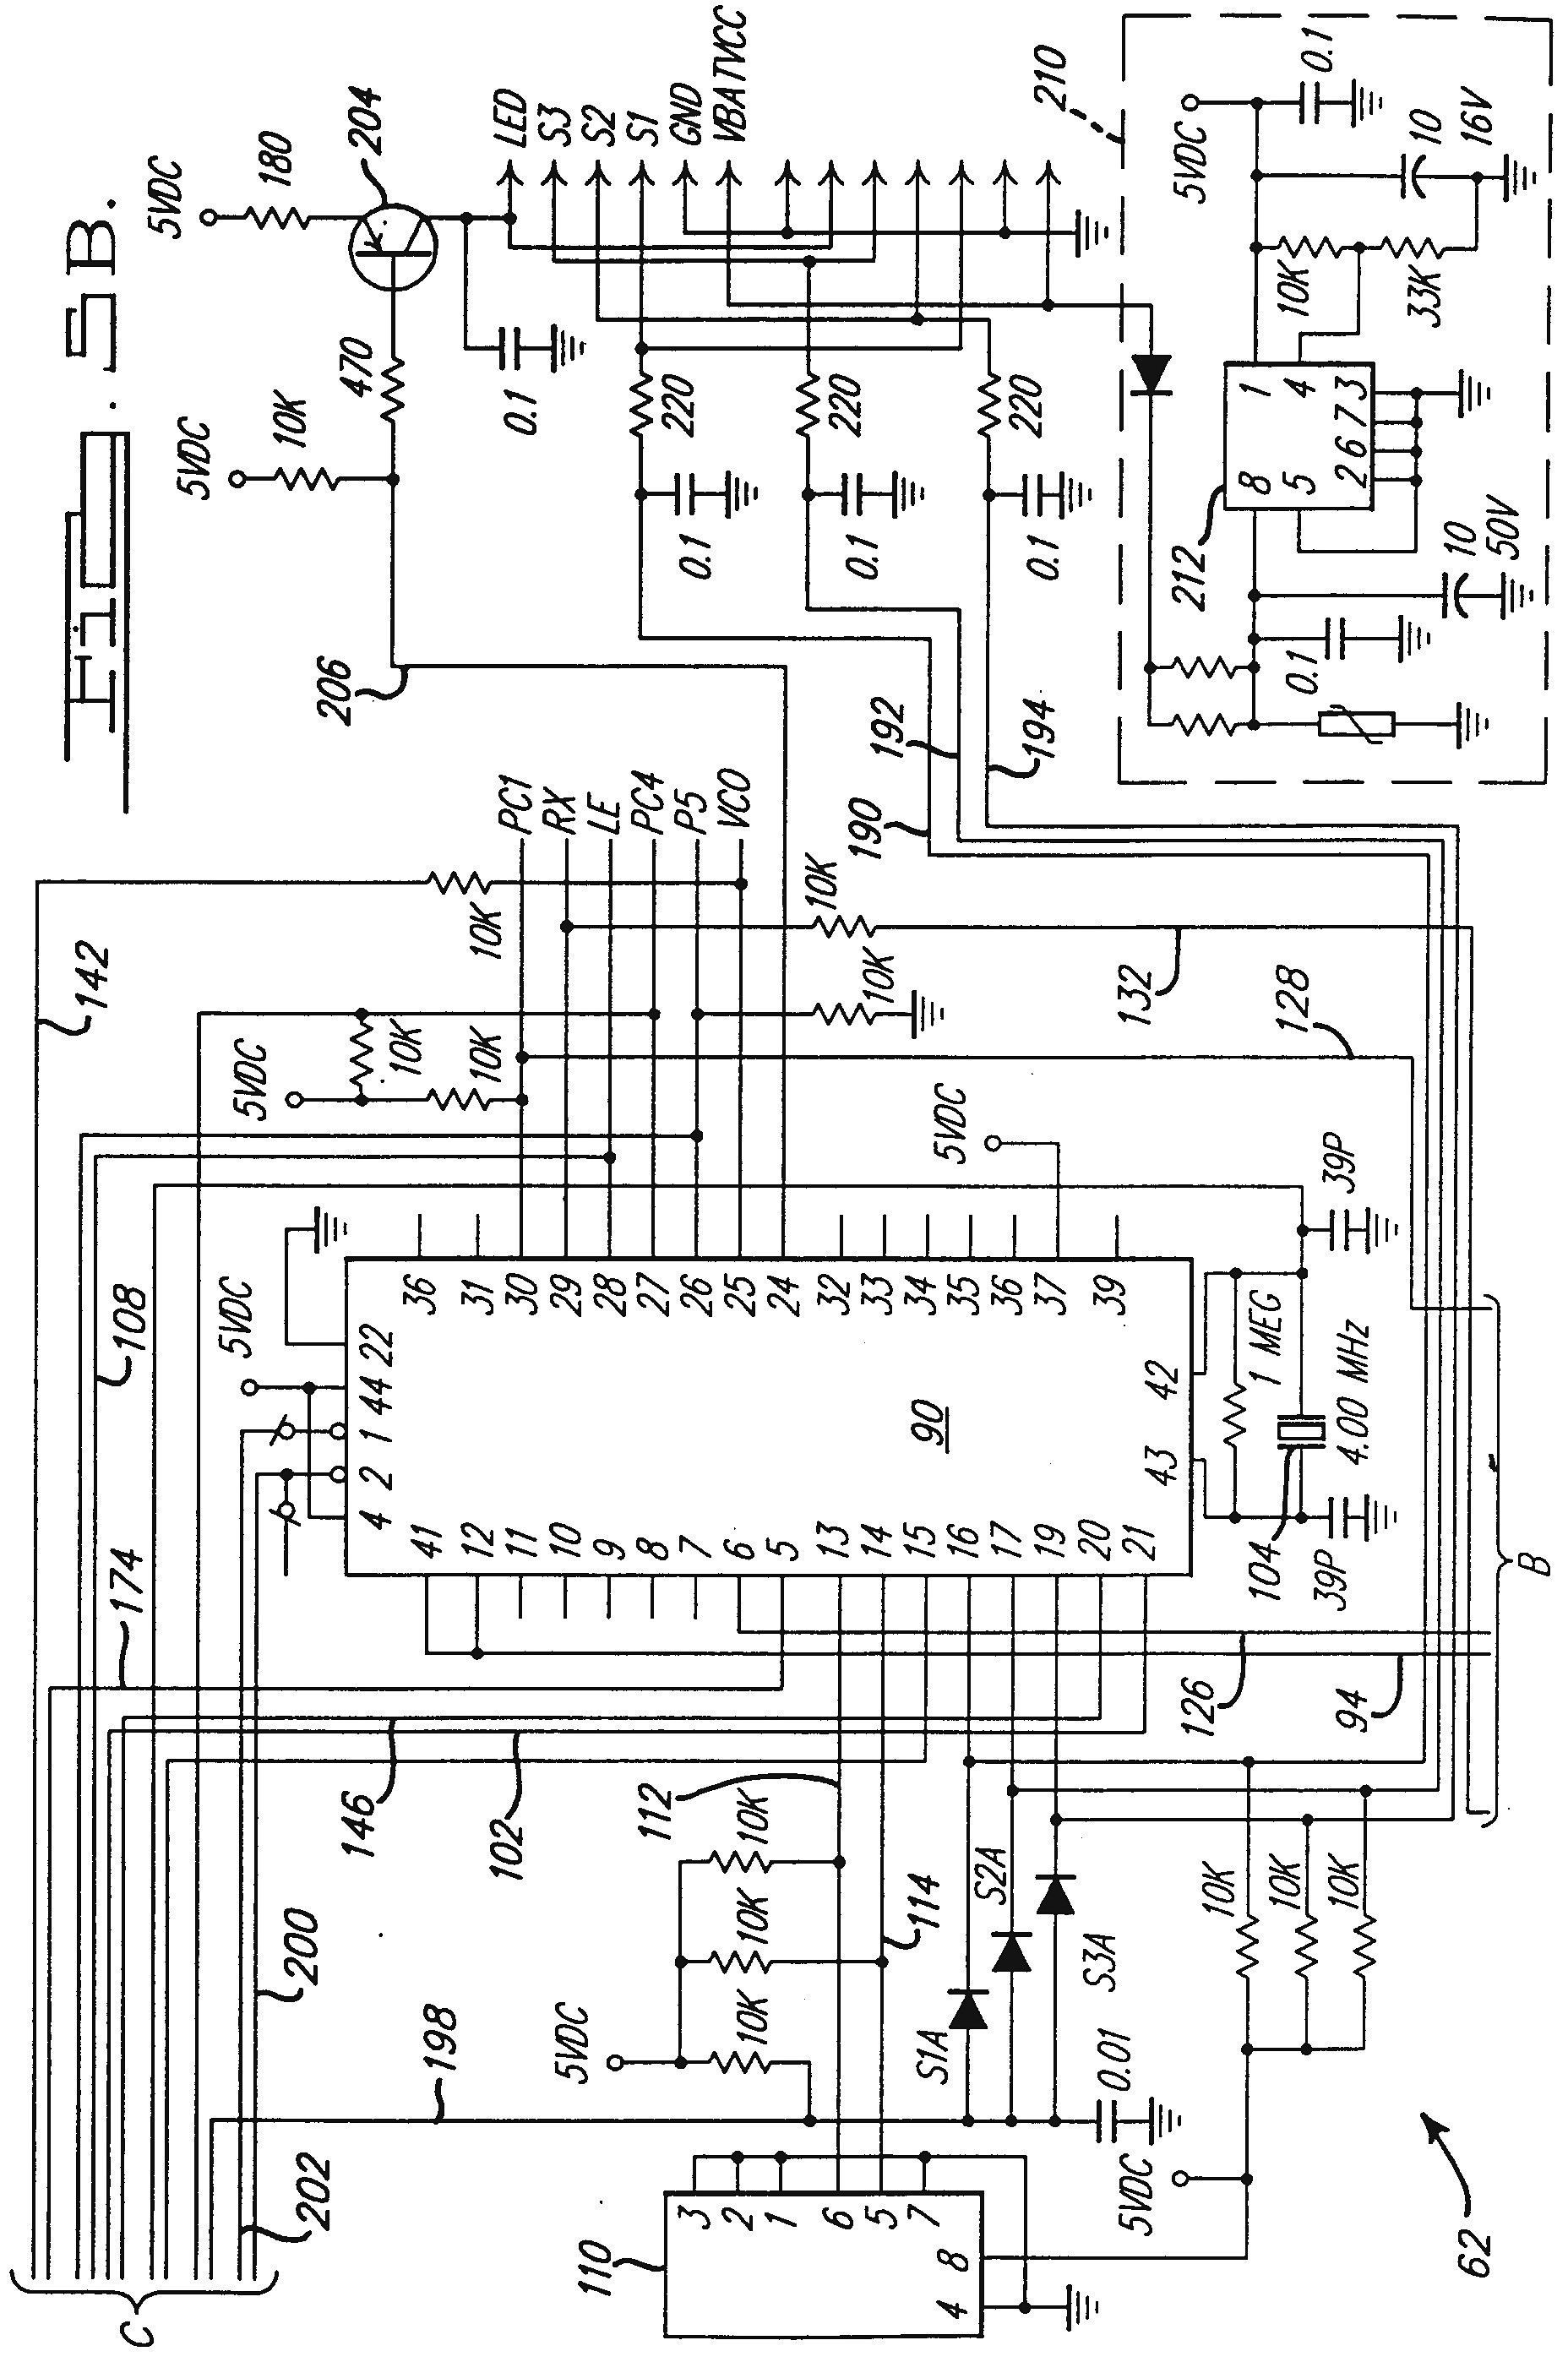 Genie Garage Door Sensor Wiring Diagram New Wiring Diagram Garage Door Opener Sensors Diagram Of Genie Garage Door Sensor Wiring Diagram